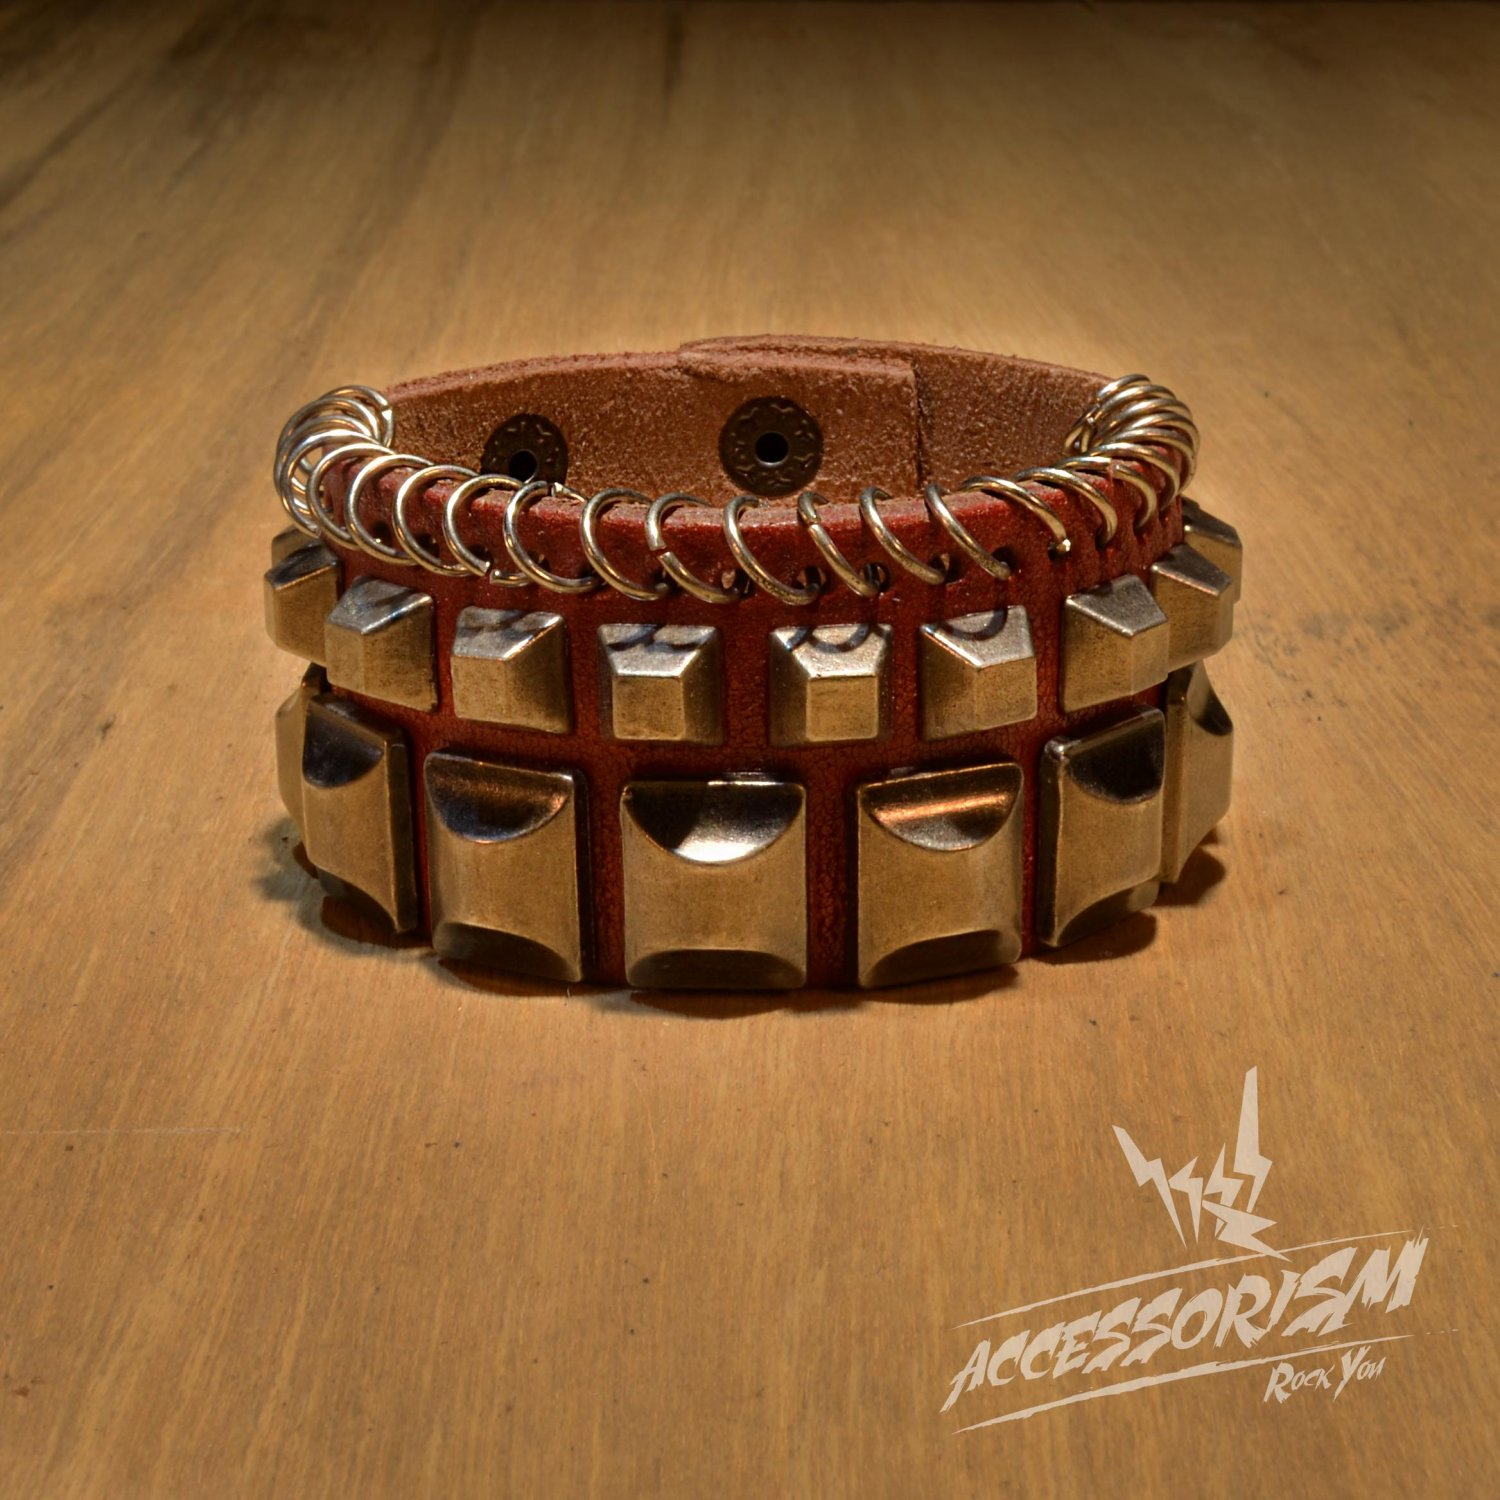 Free Shipping Multi Metal Square & Rings Red Leather Cuff Wristband Bracelet Rock Punk (B651RR)